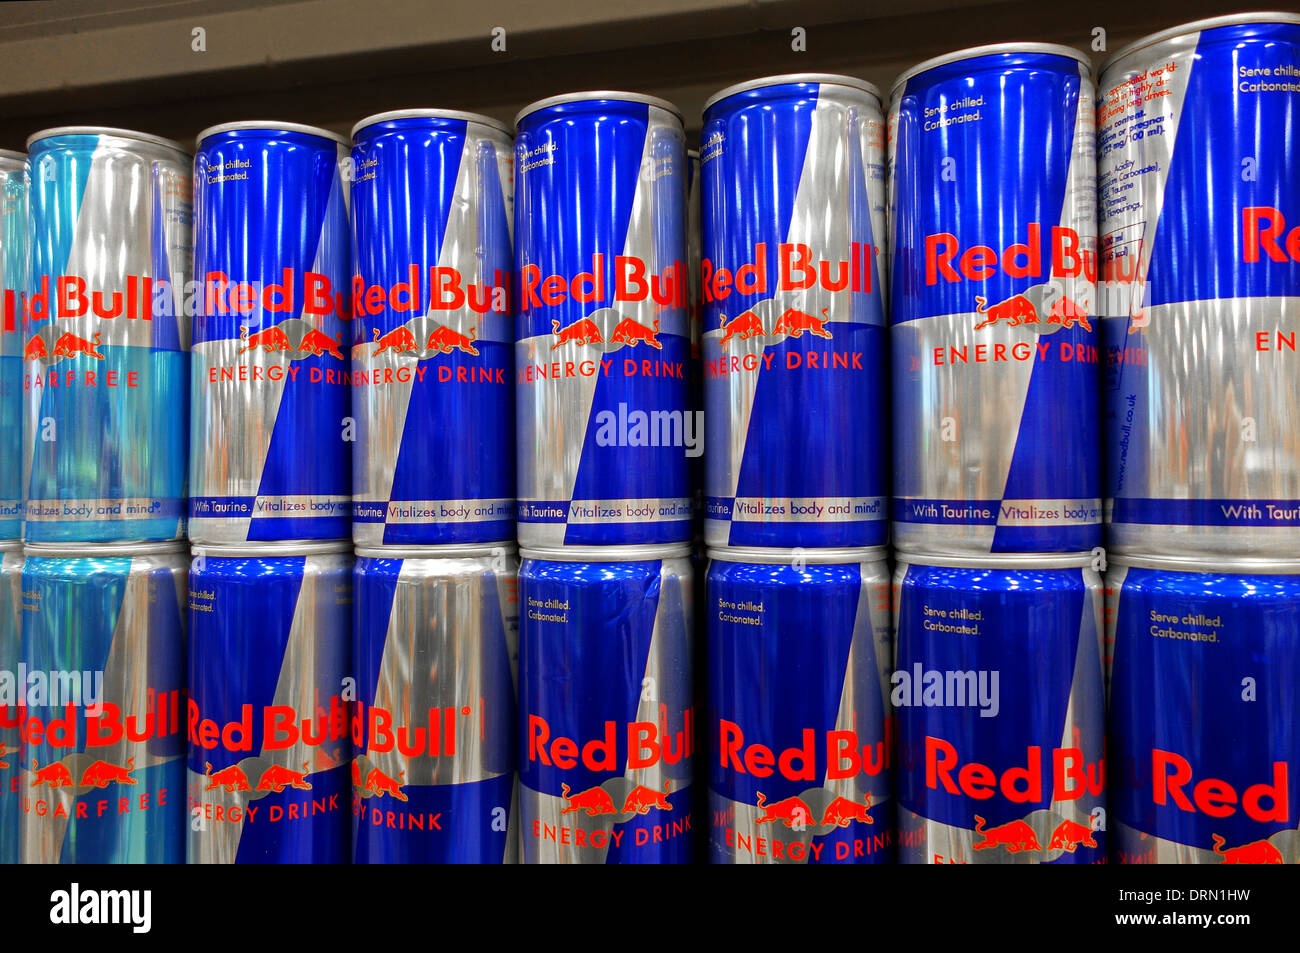 red bull energy drink stock photos red bull energy drink. Black Bedroom Furniture Sets. Home Design Ideas